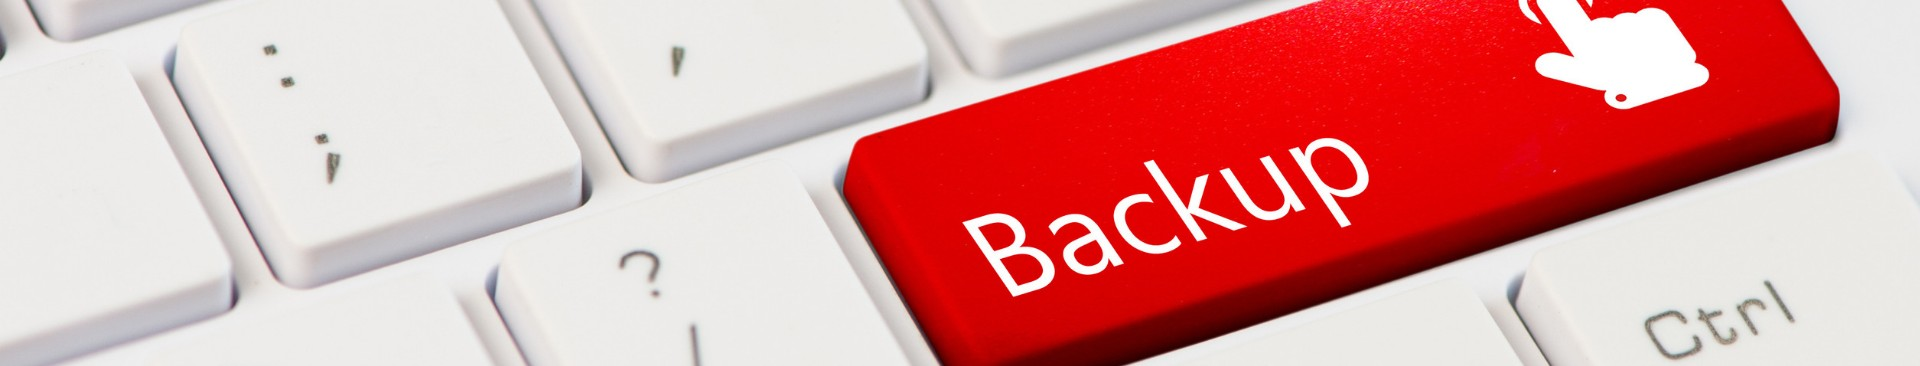 backing up data and best practices for backing up data